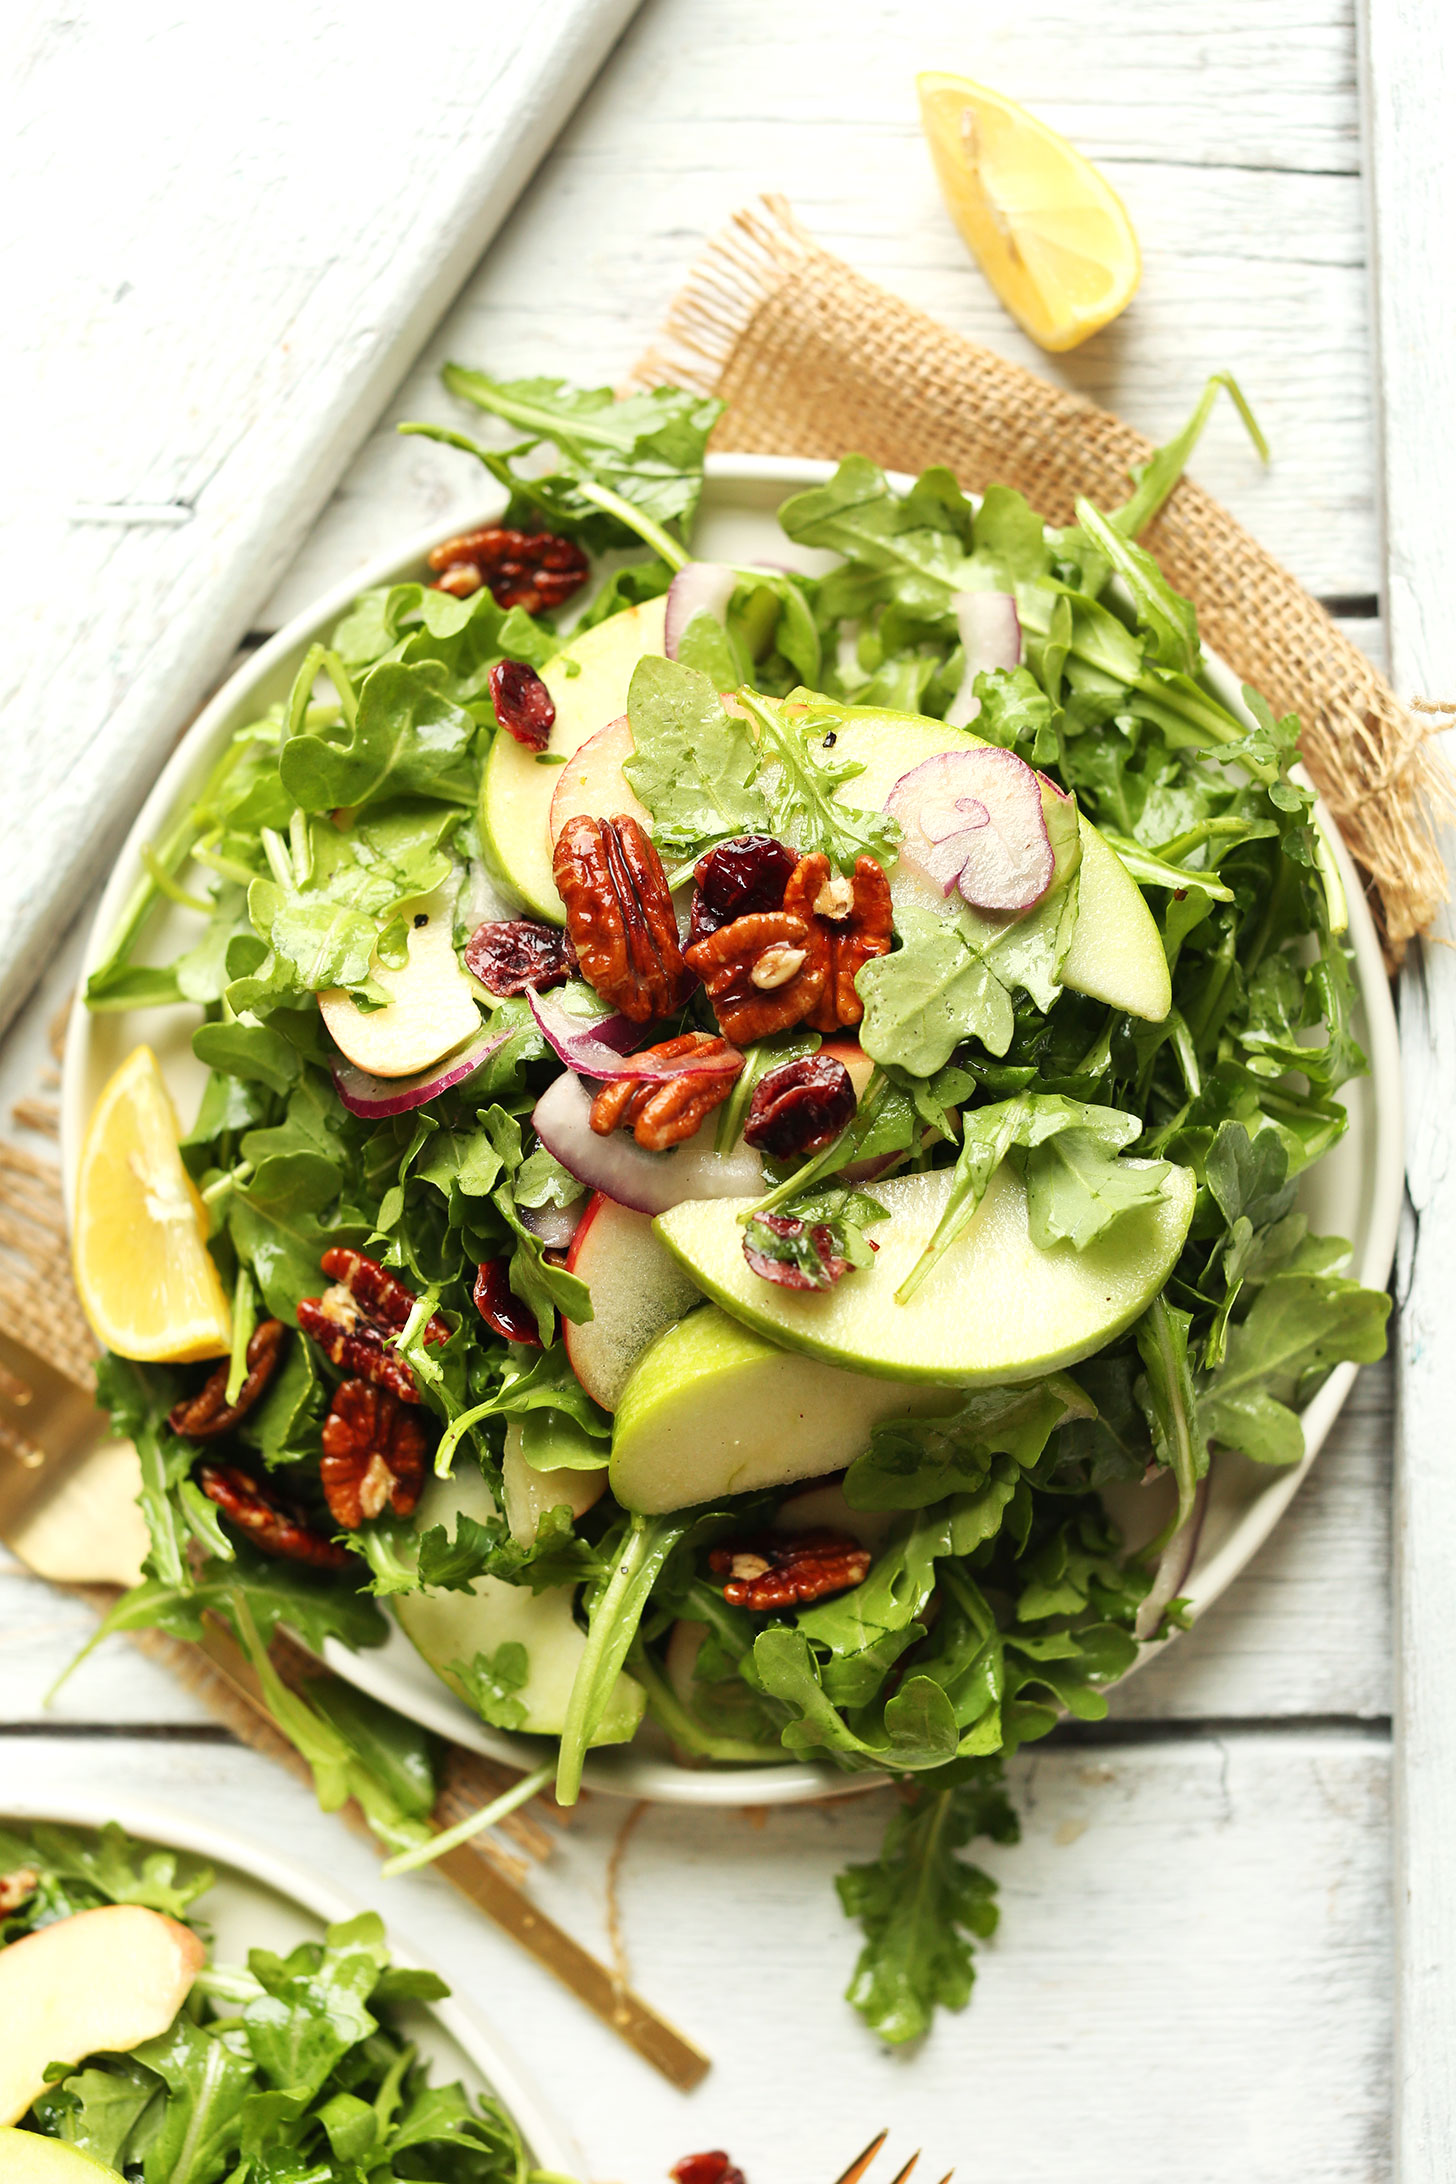 Big plate of our recipe for Apple Arugula Salad with Pecans and Lemon Vinaigrette